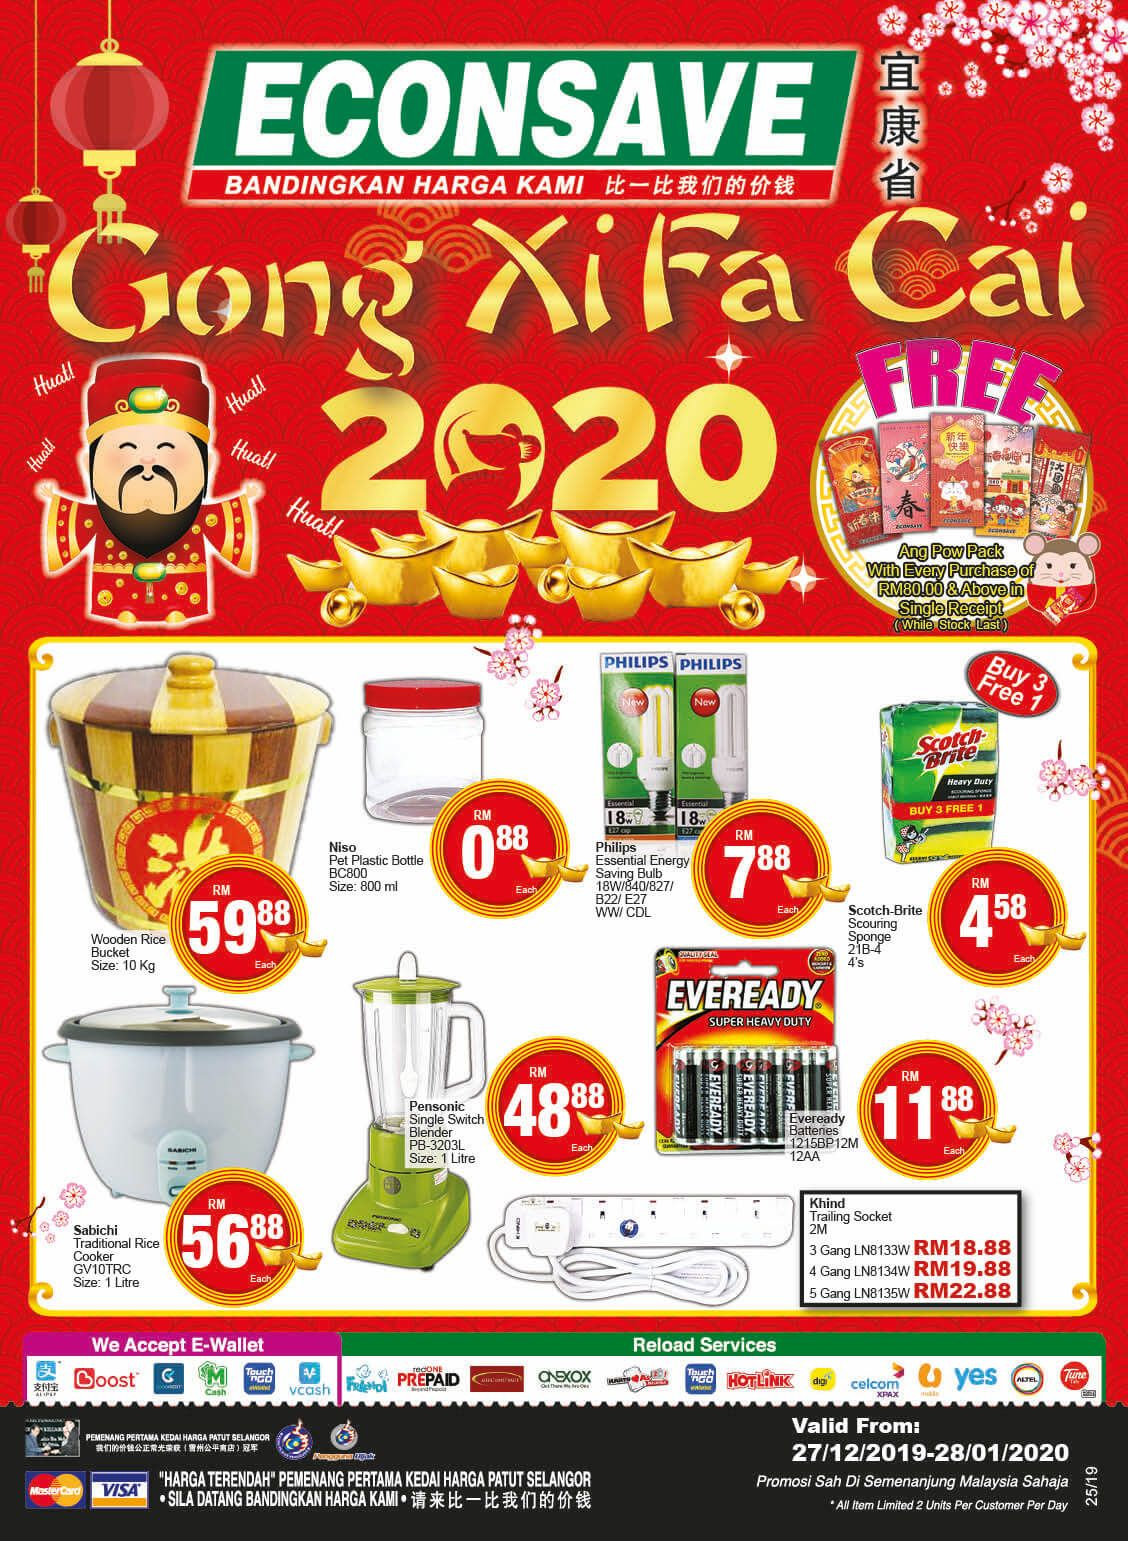 Econsave Cny Home Essential Promotion Catalogue 27 Dec 2019 28 Jan 2020 Catalog Promotion Bulbs Energy